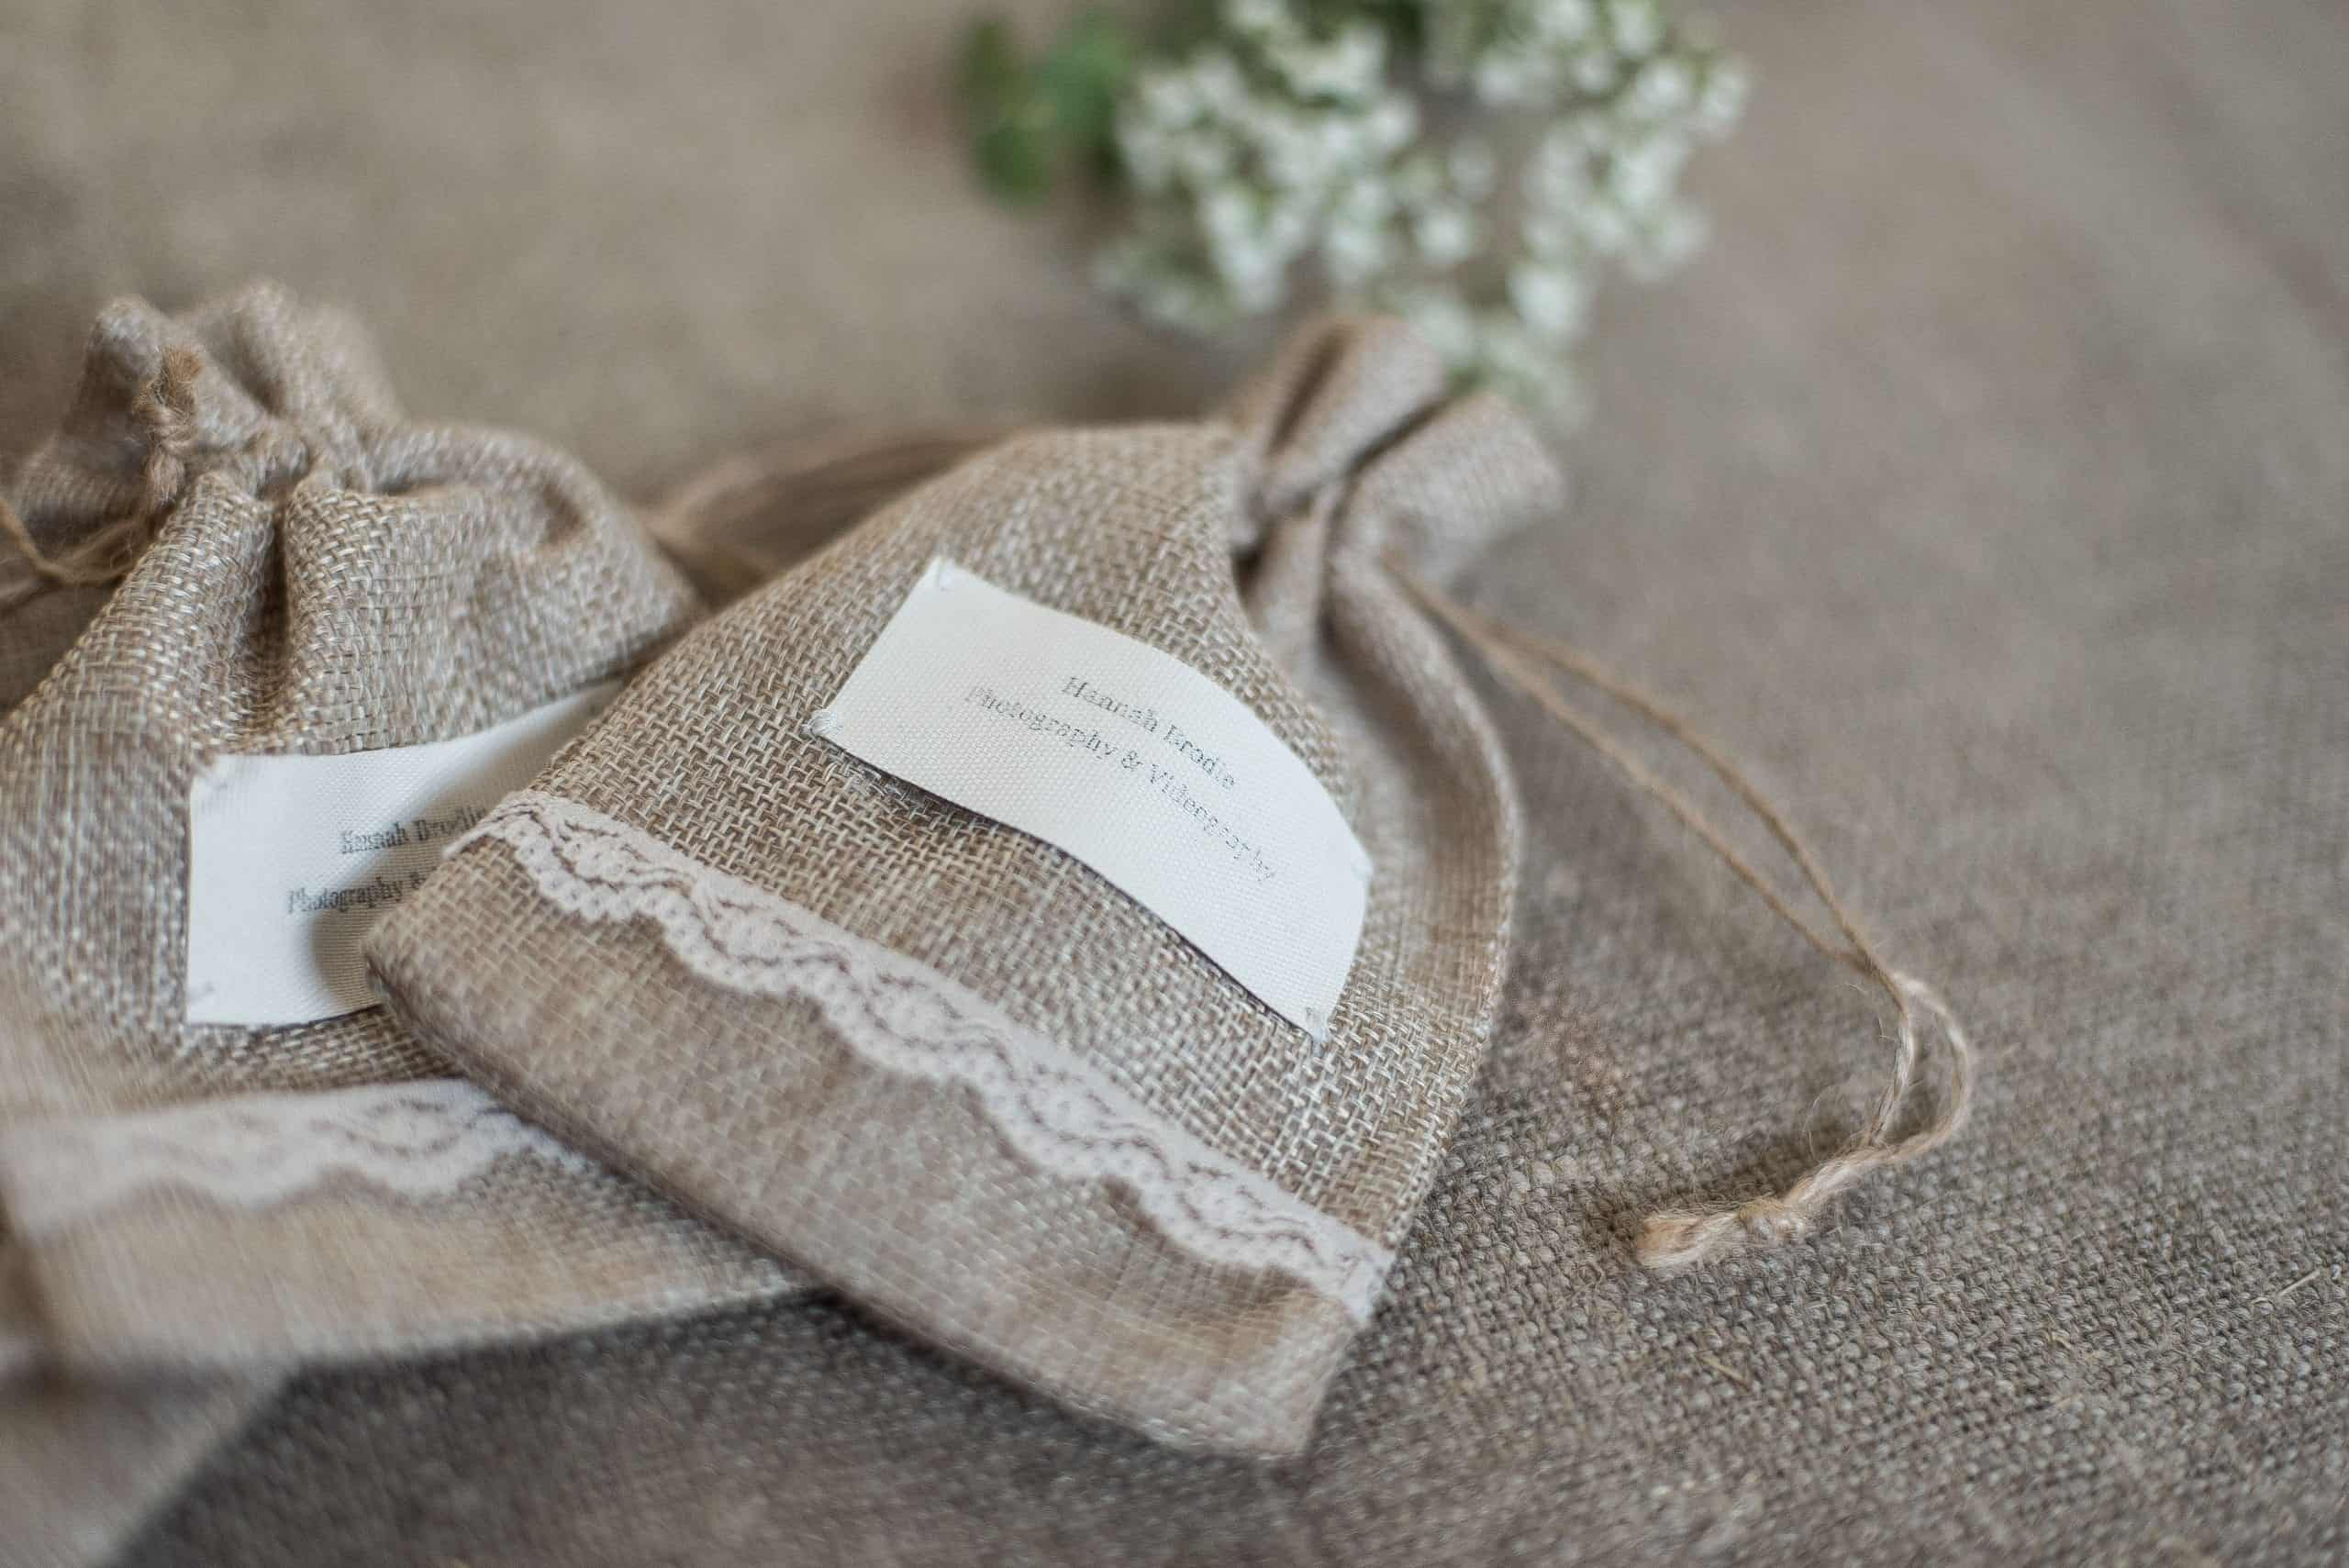 Personalised USB Stick Bags for client wedding photos